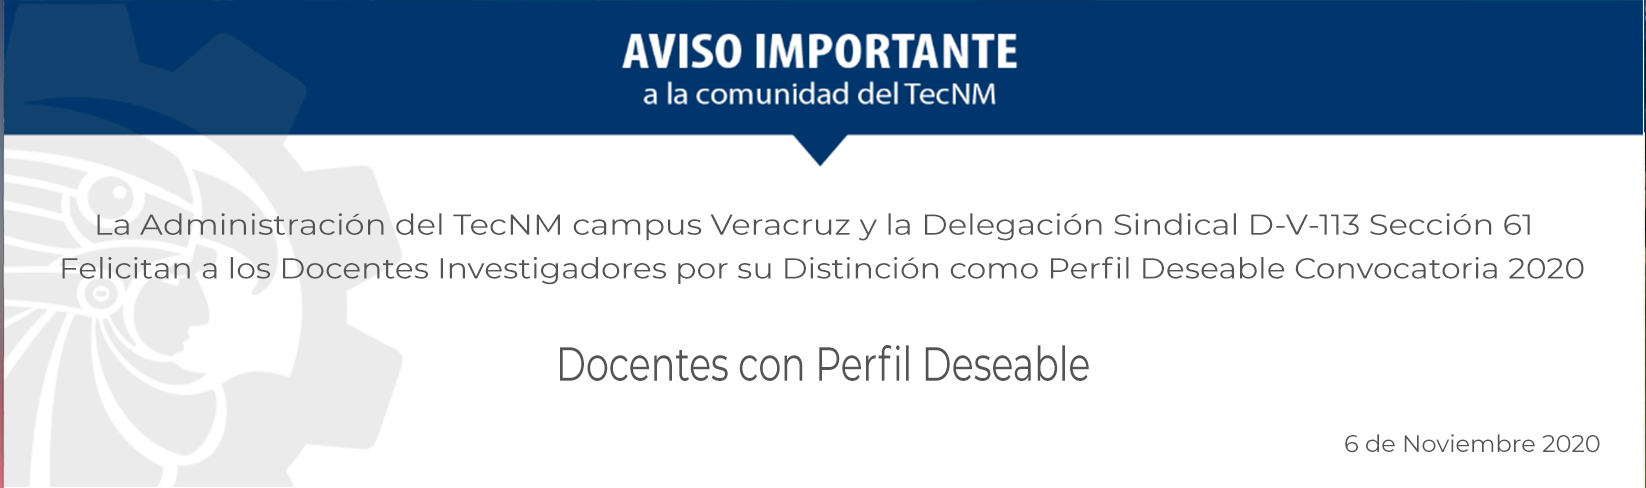 Docentes con Perfil Deseable